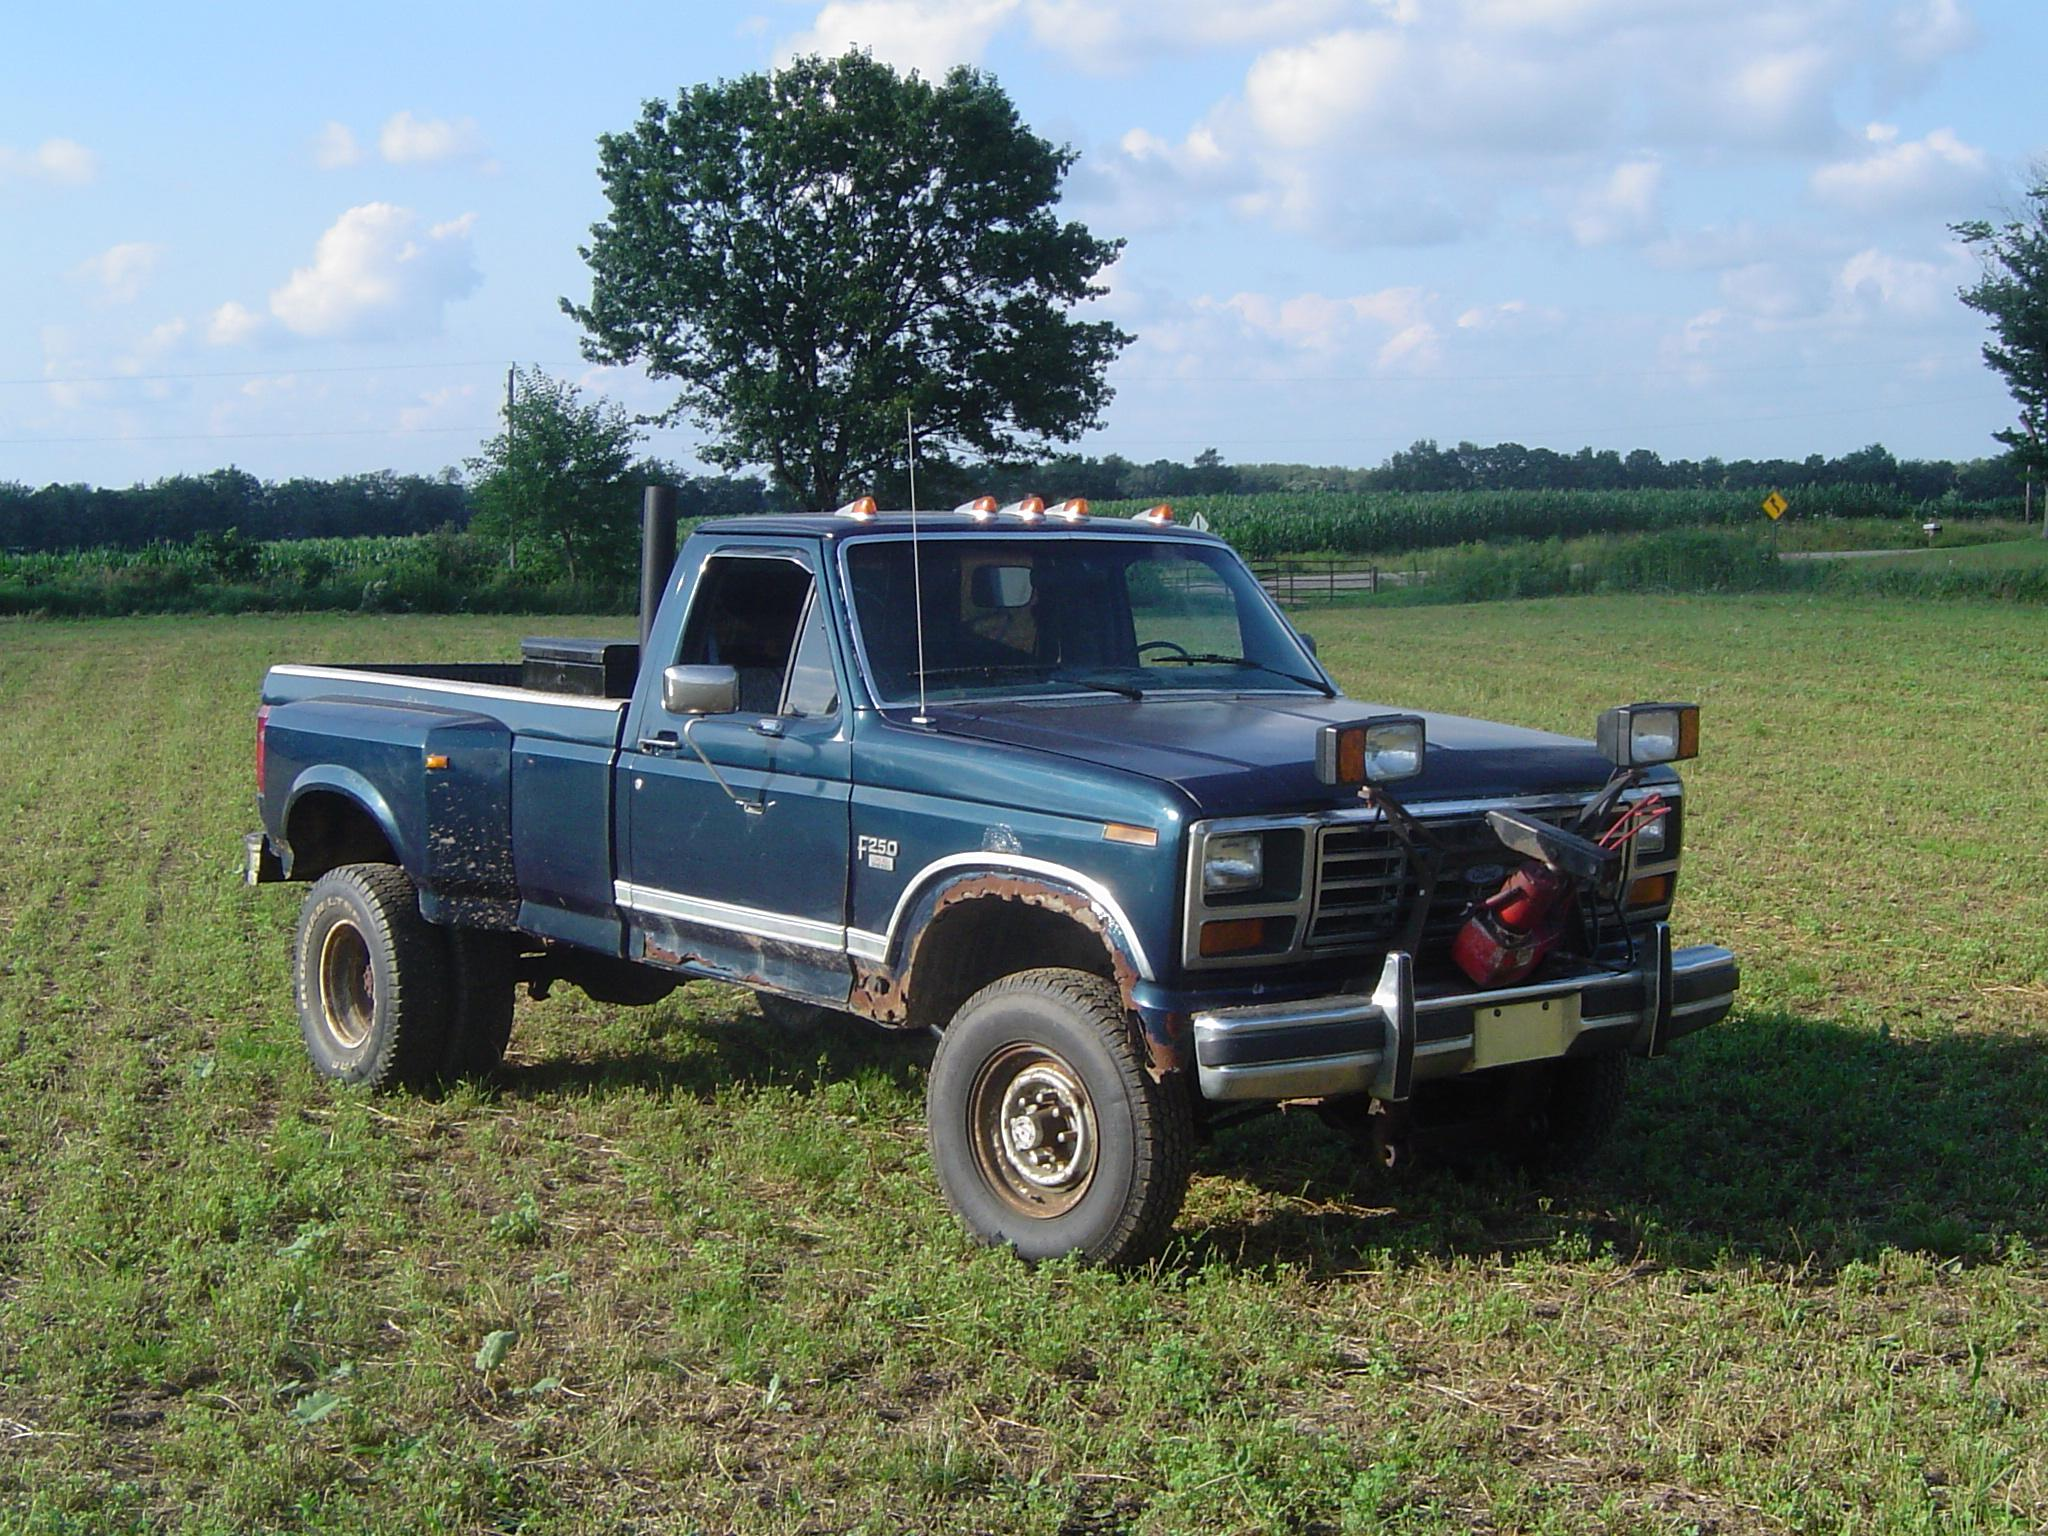 Bjsilbernagel 1986 Ford F250 Regular Cab Specs Photos Modification Info At Cardomain